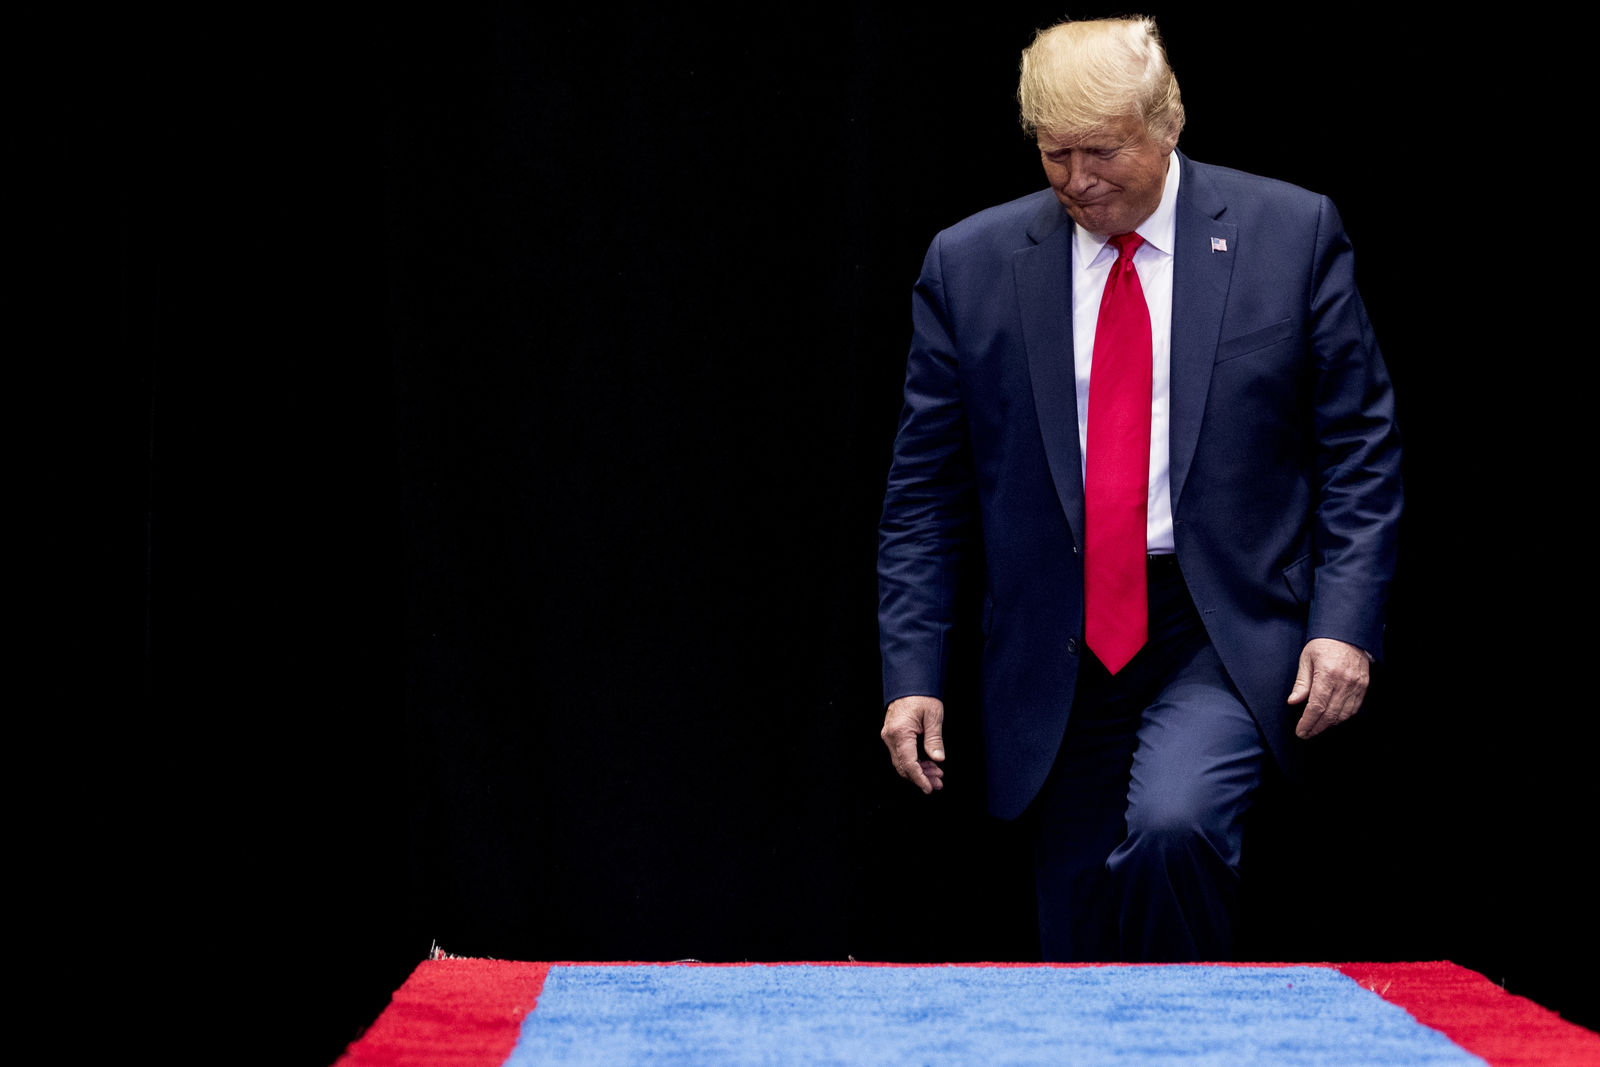 President Donald Trump takes the stage at a campaign rally at American Airlines Arena in Dallas, Texas, Thursday, Oct. 17, 2019. (AP Photo/Andrew Harnik)